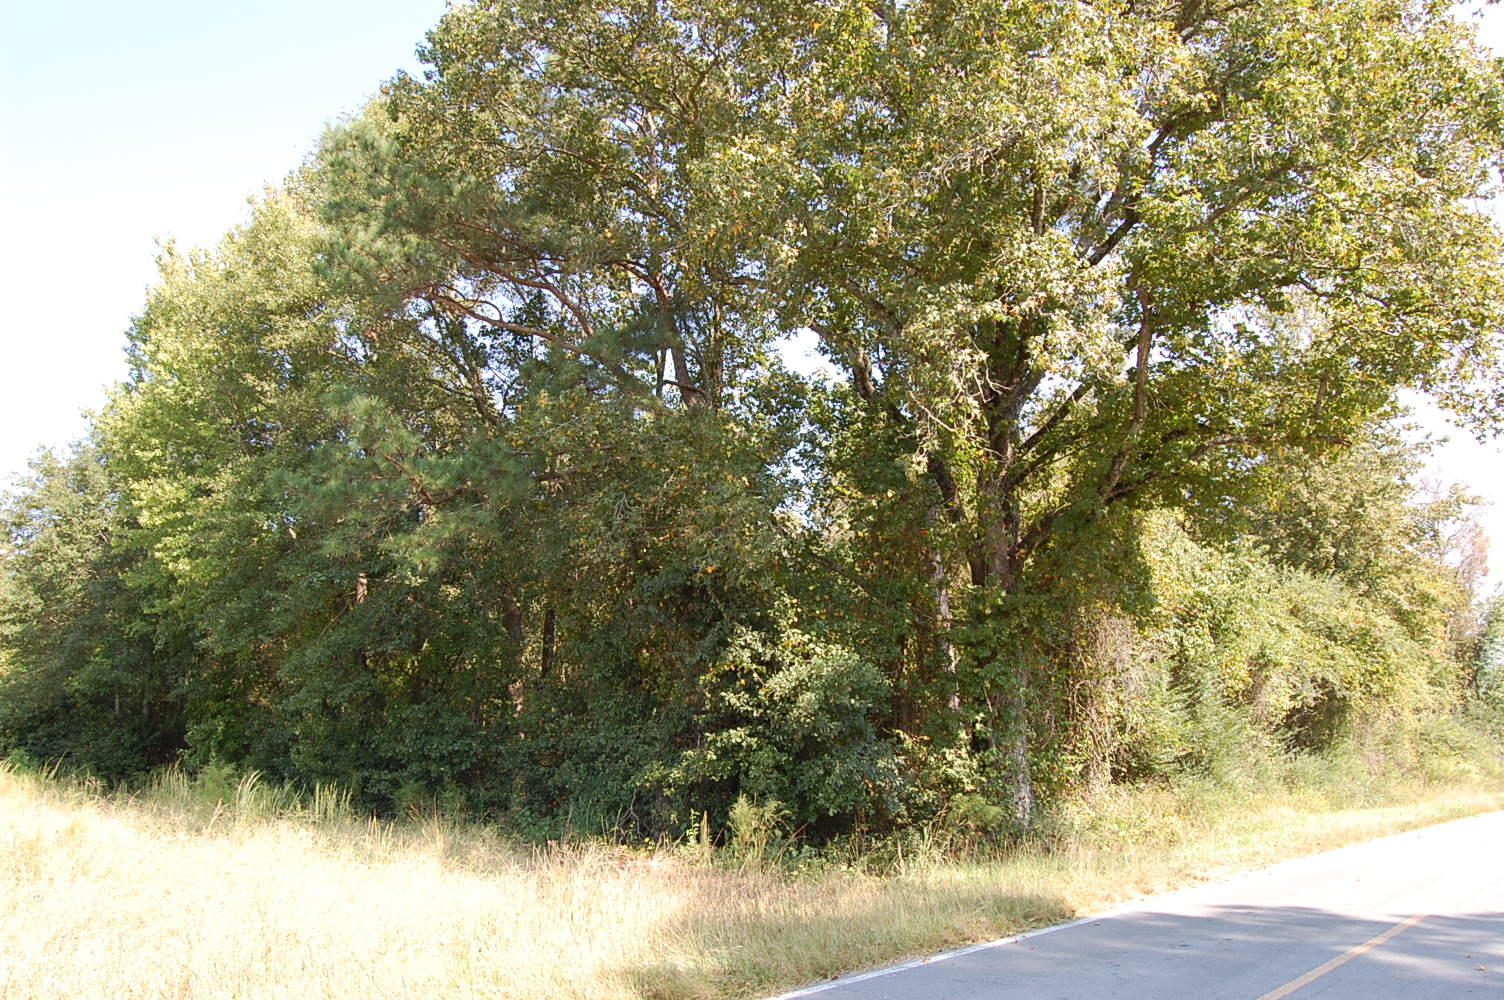 Nearly 1 Acre in Quaint Southern Community - Image 0